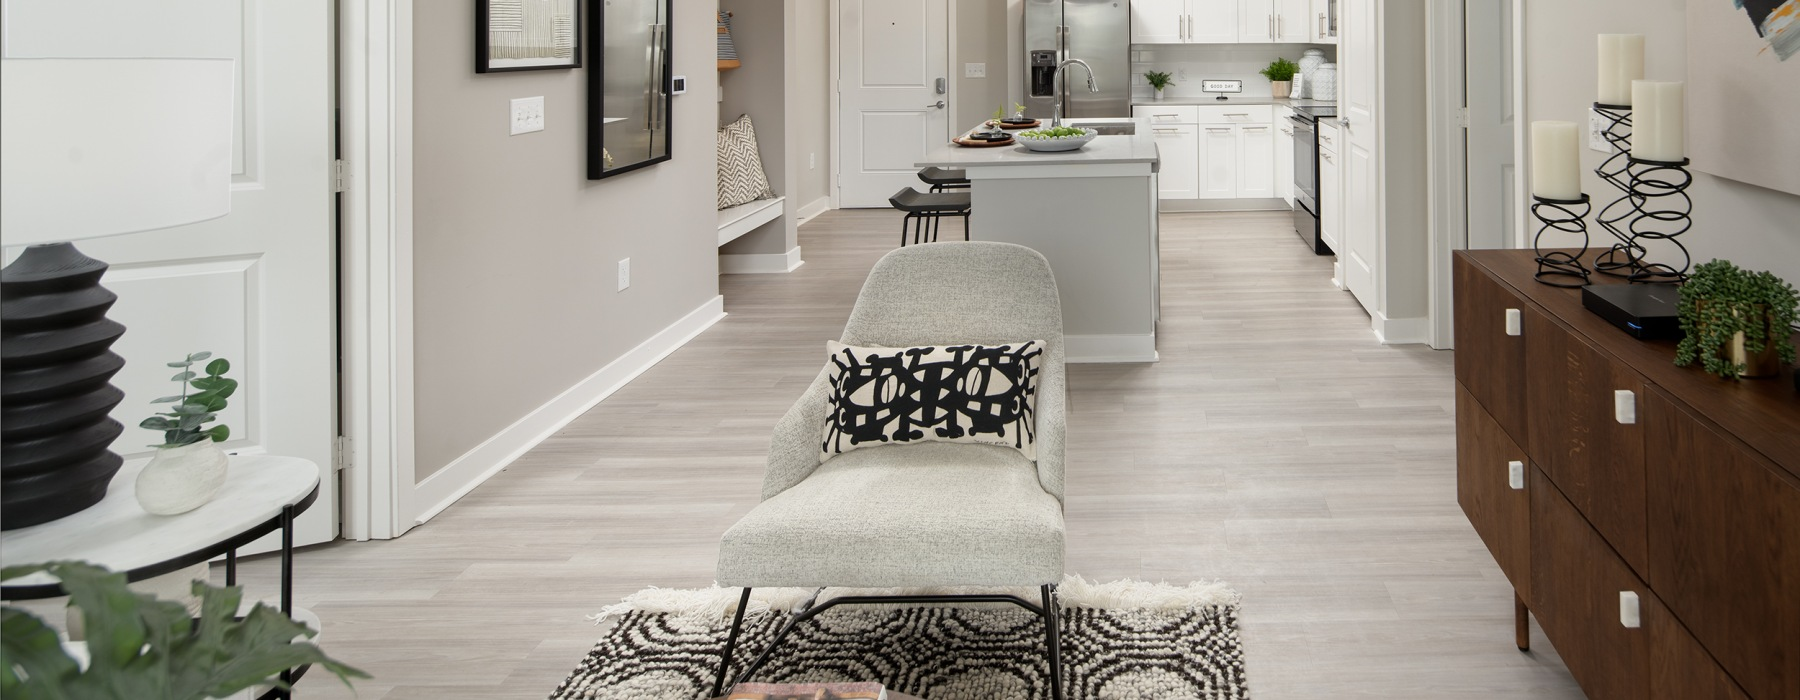 Spacious and well lit living room with an open floorplan style that leads right into the kitchen.